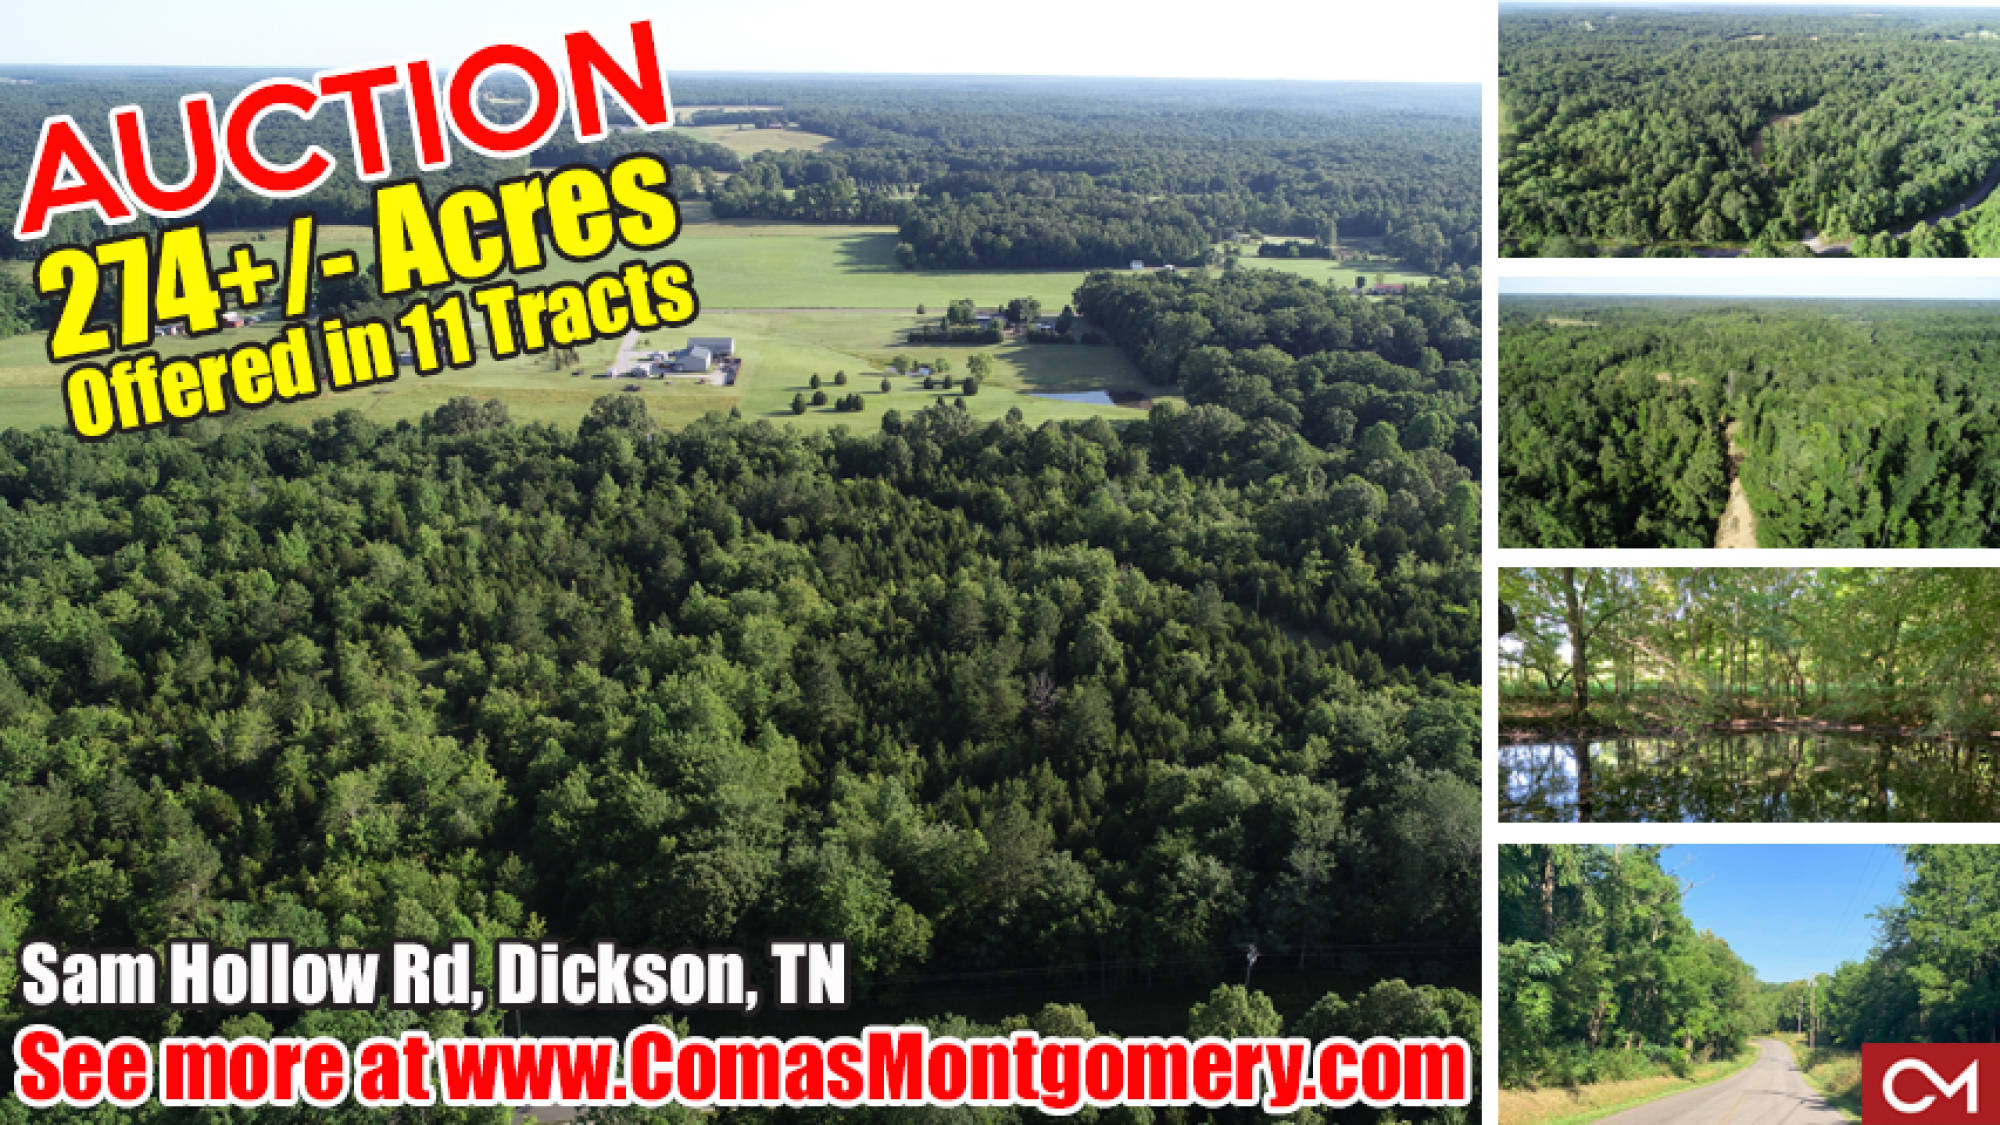 Land, Farm, Acres, For Sale, Dickson, Tennessee, Real Estate, Auction, Build, New Home, Soil Site, Nashville, Comas, Montgomery